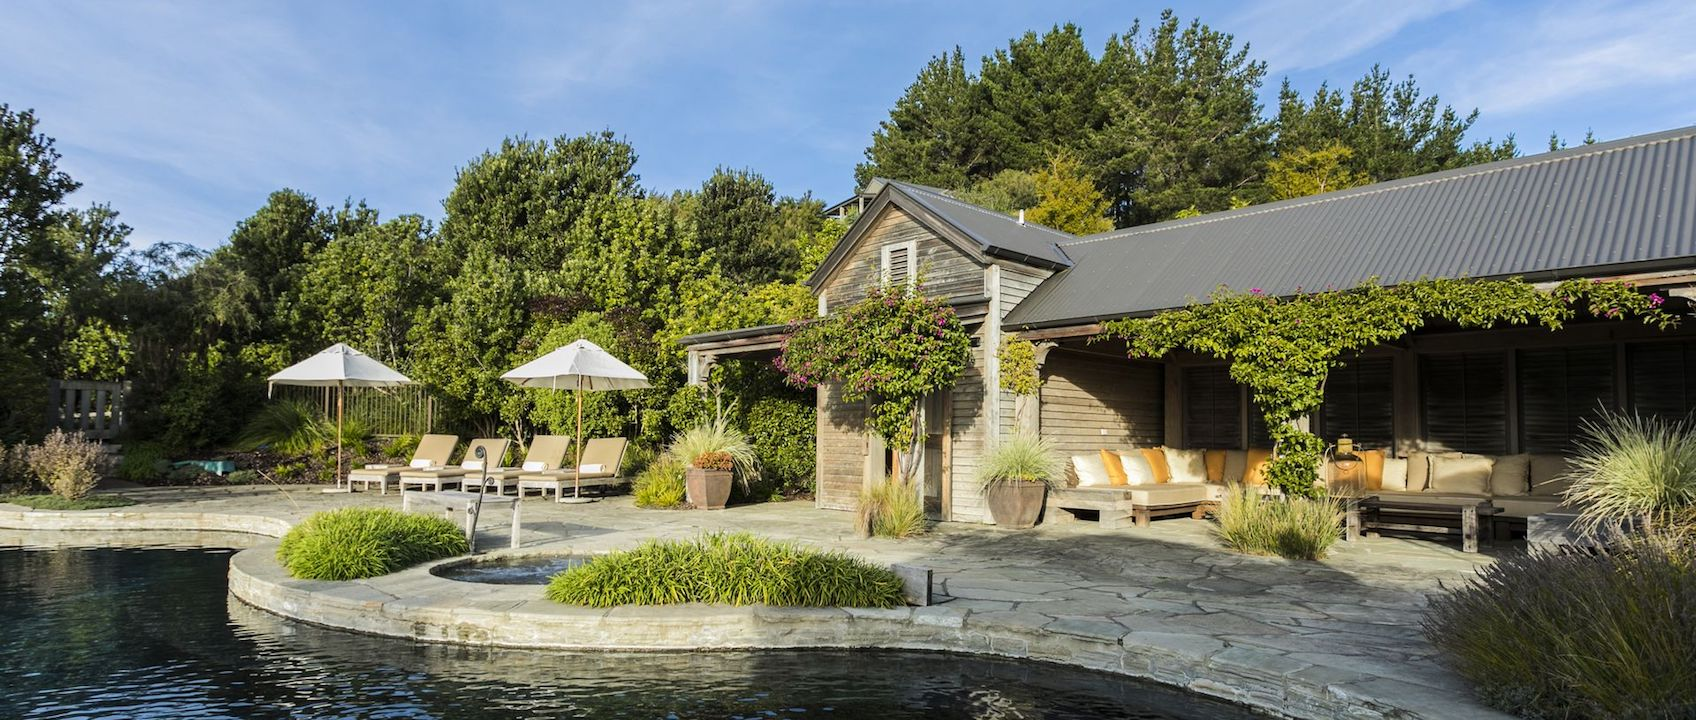 Robertson luxurious Lodges Cape Kidnappers , Hawke's Bay / New Zealand